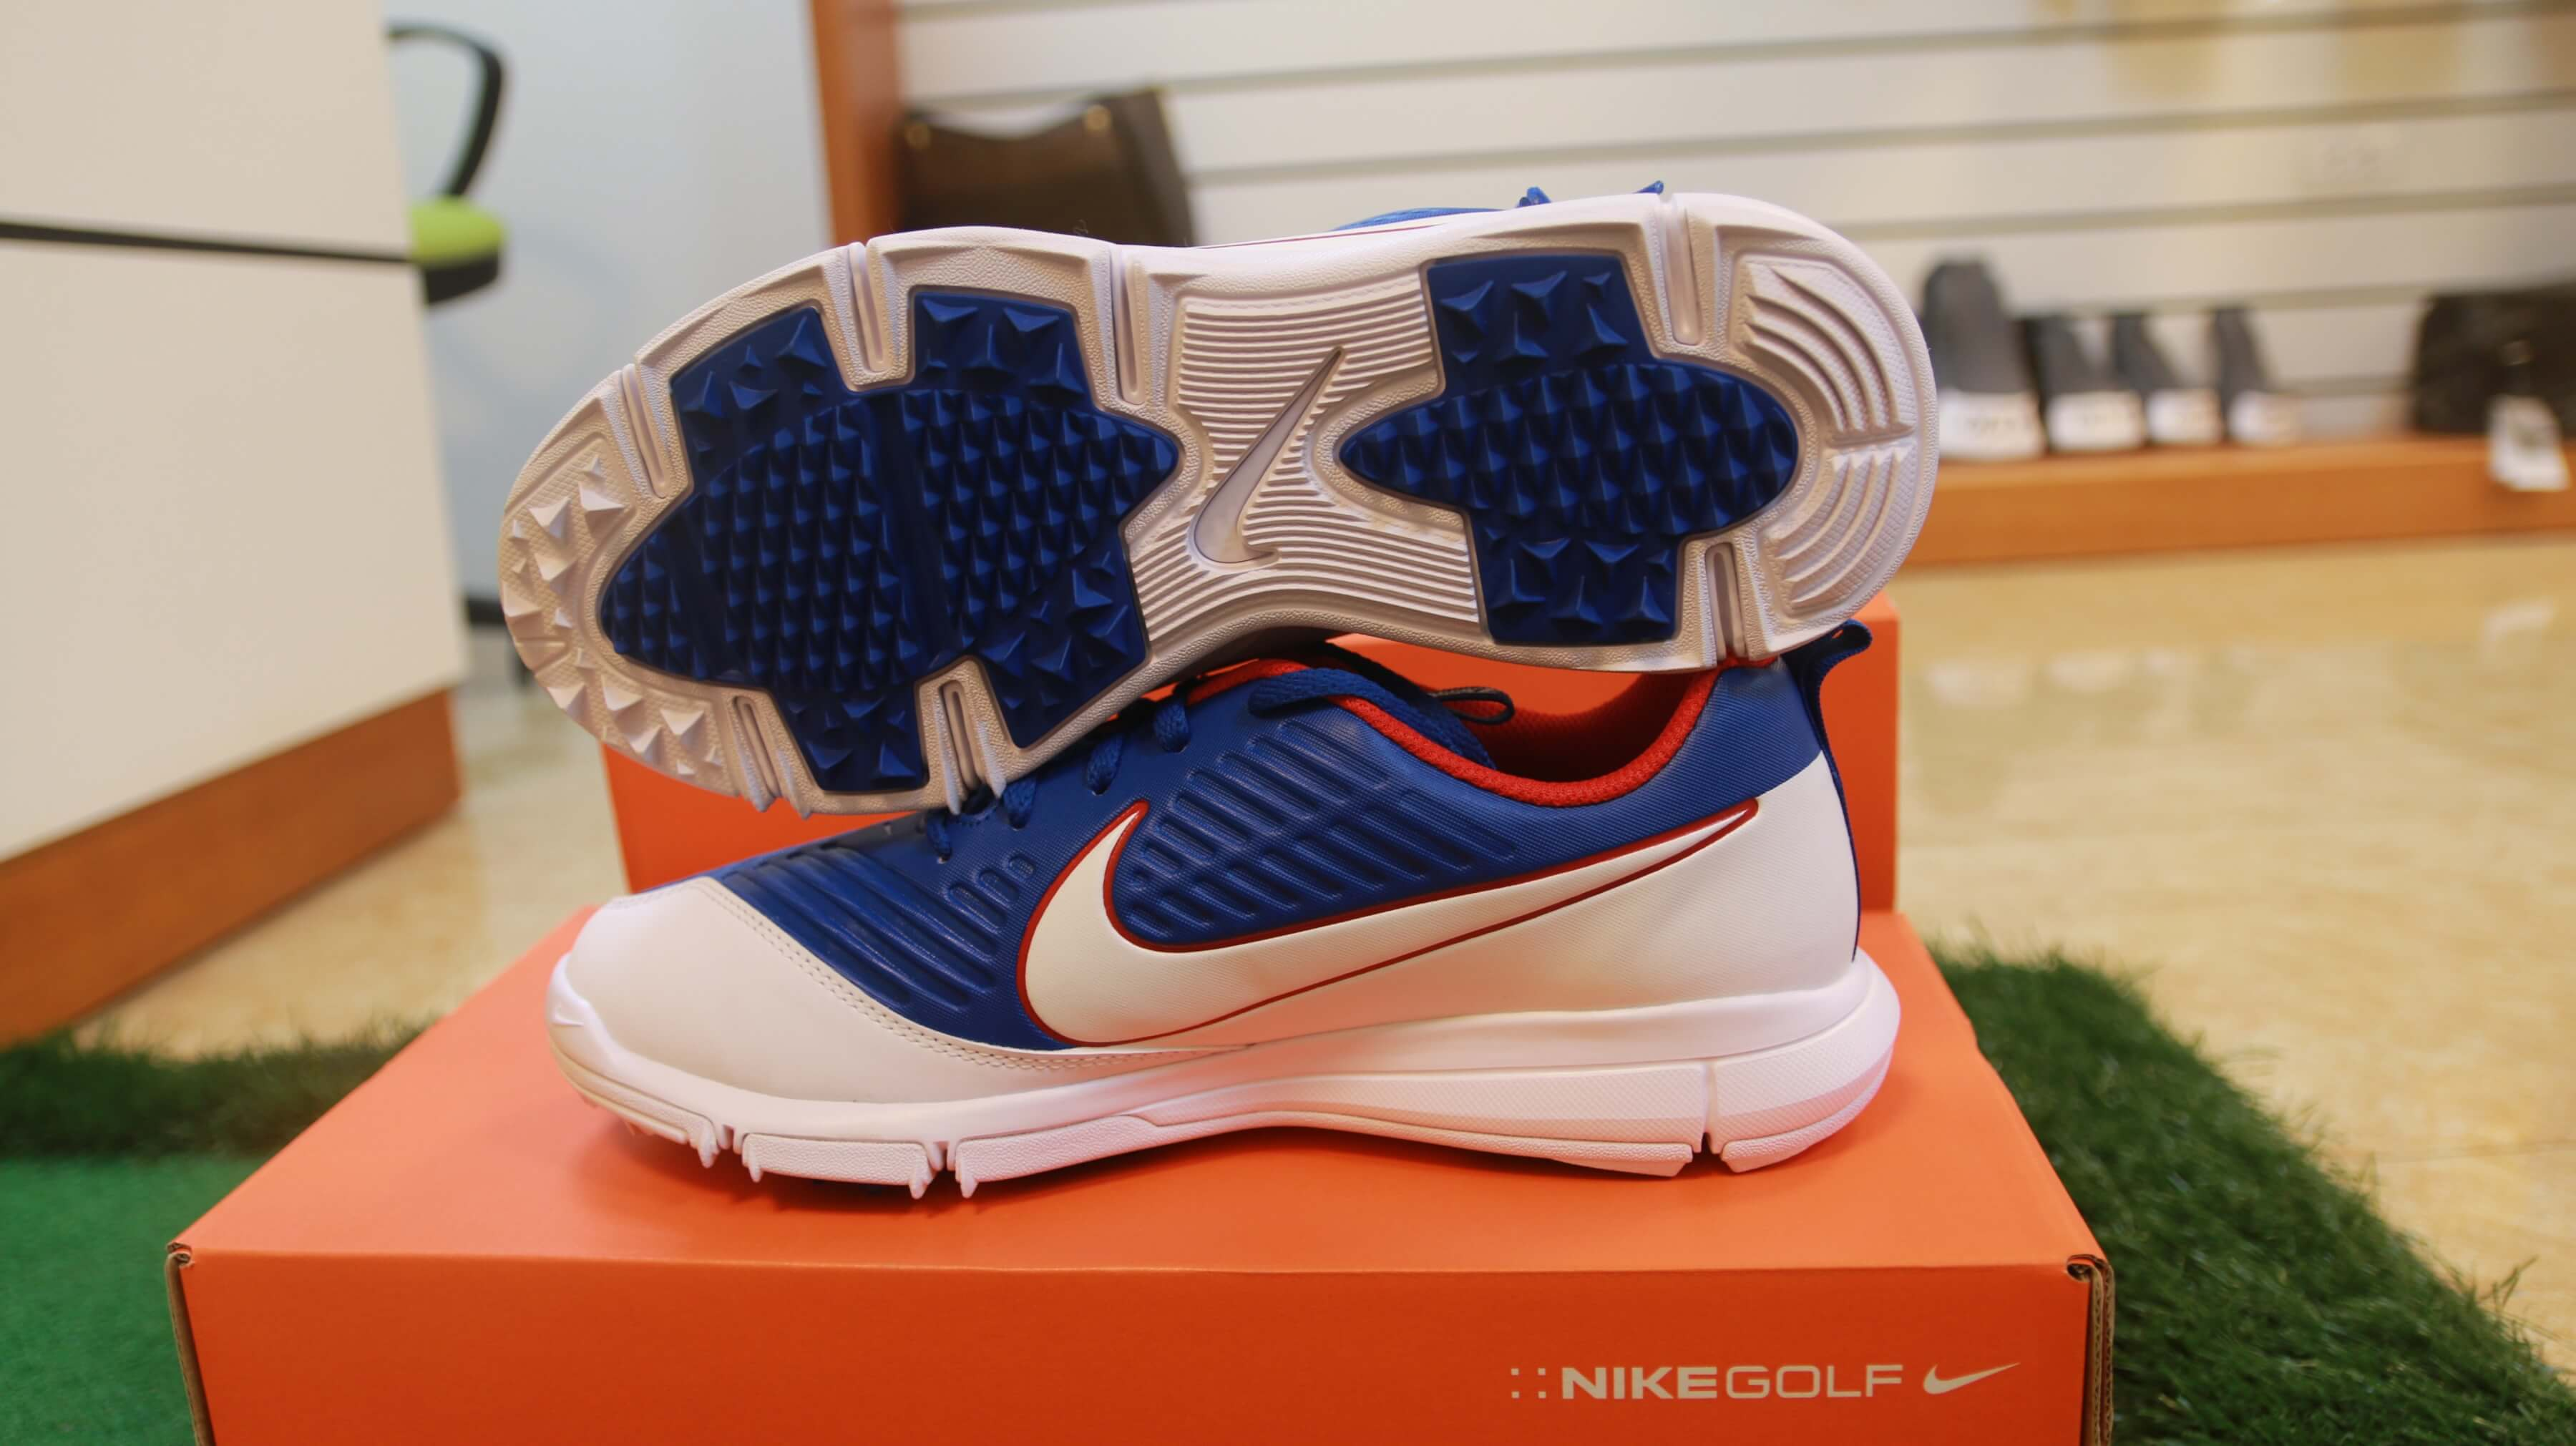 giày golf nike explorer 2 w